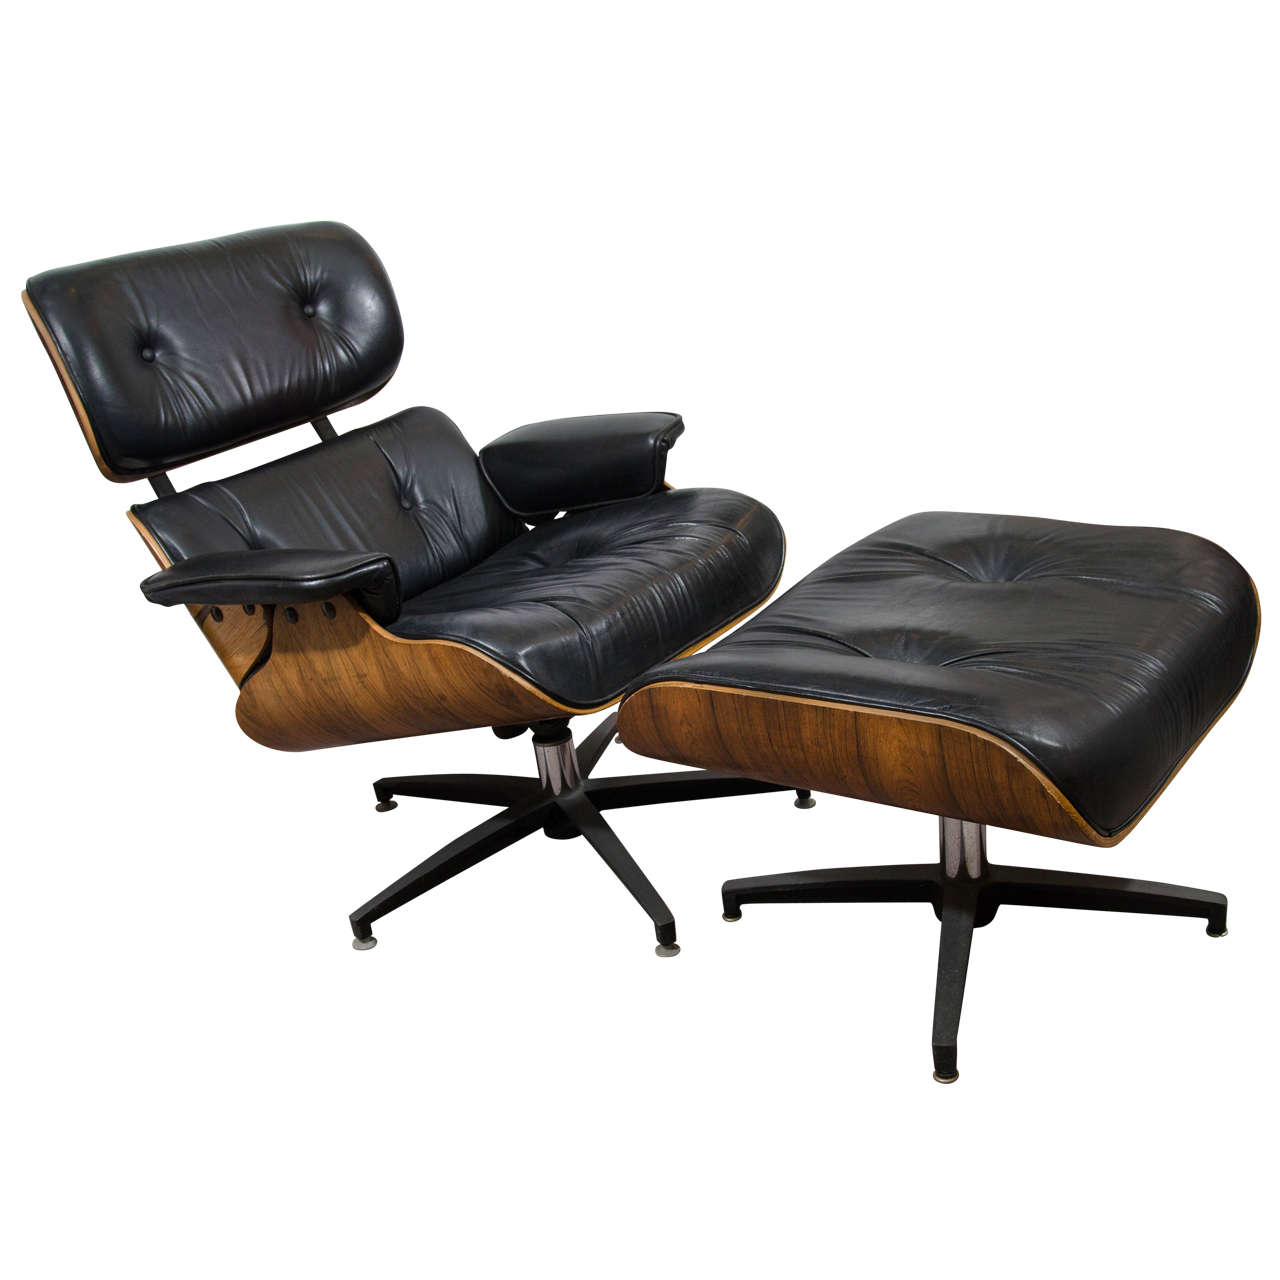 Midcentury Eames Style Lounge Chair and Ottoman at 1stdibs